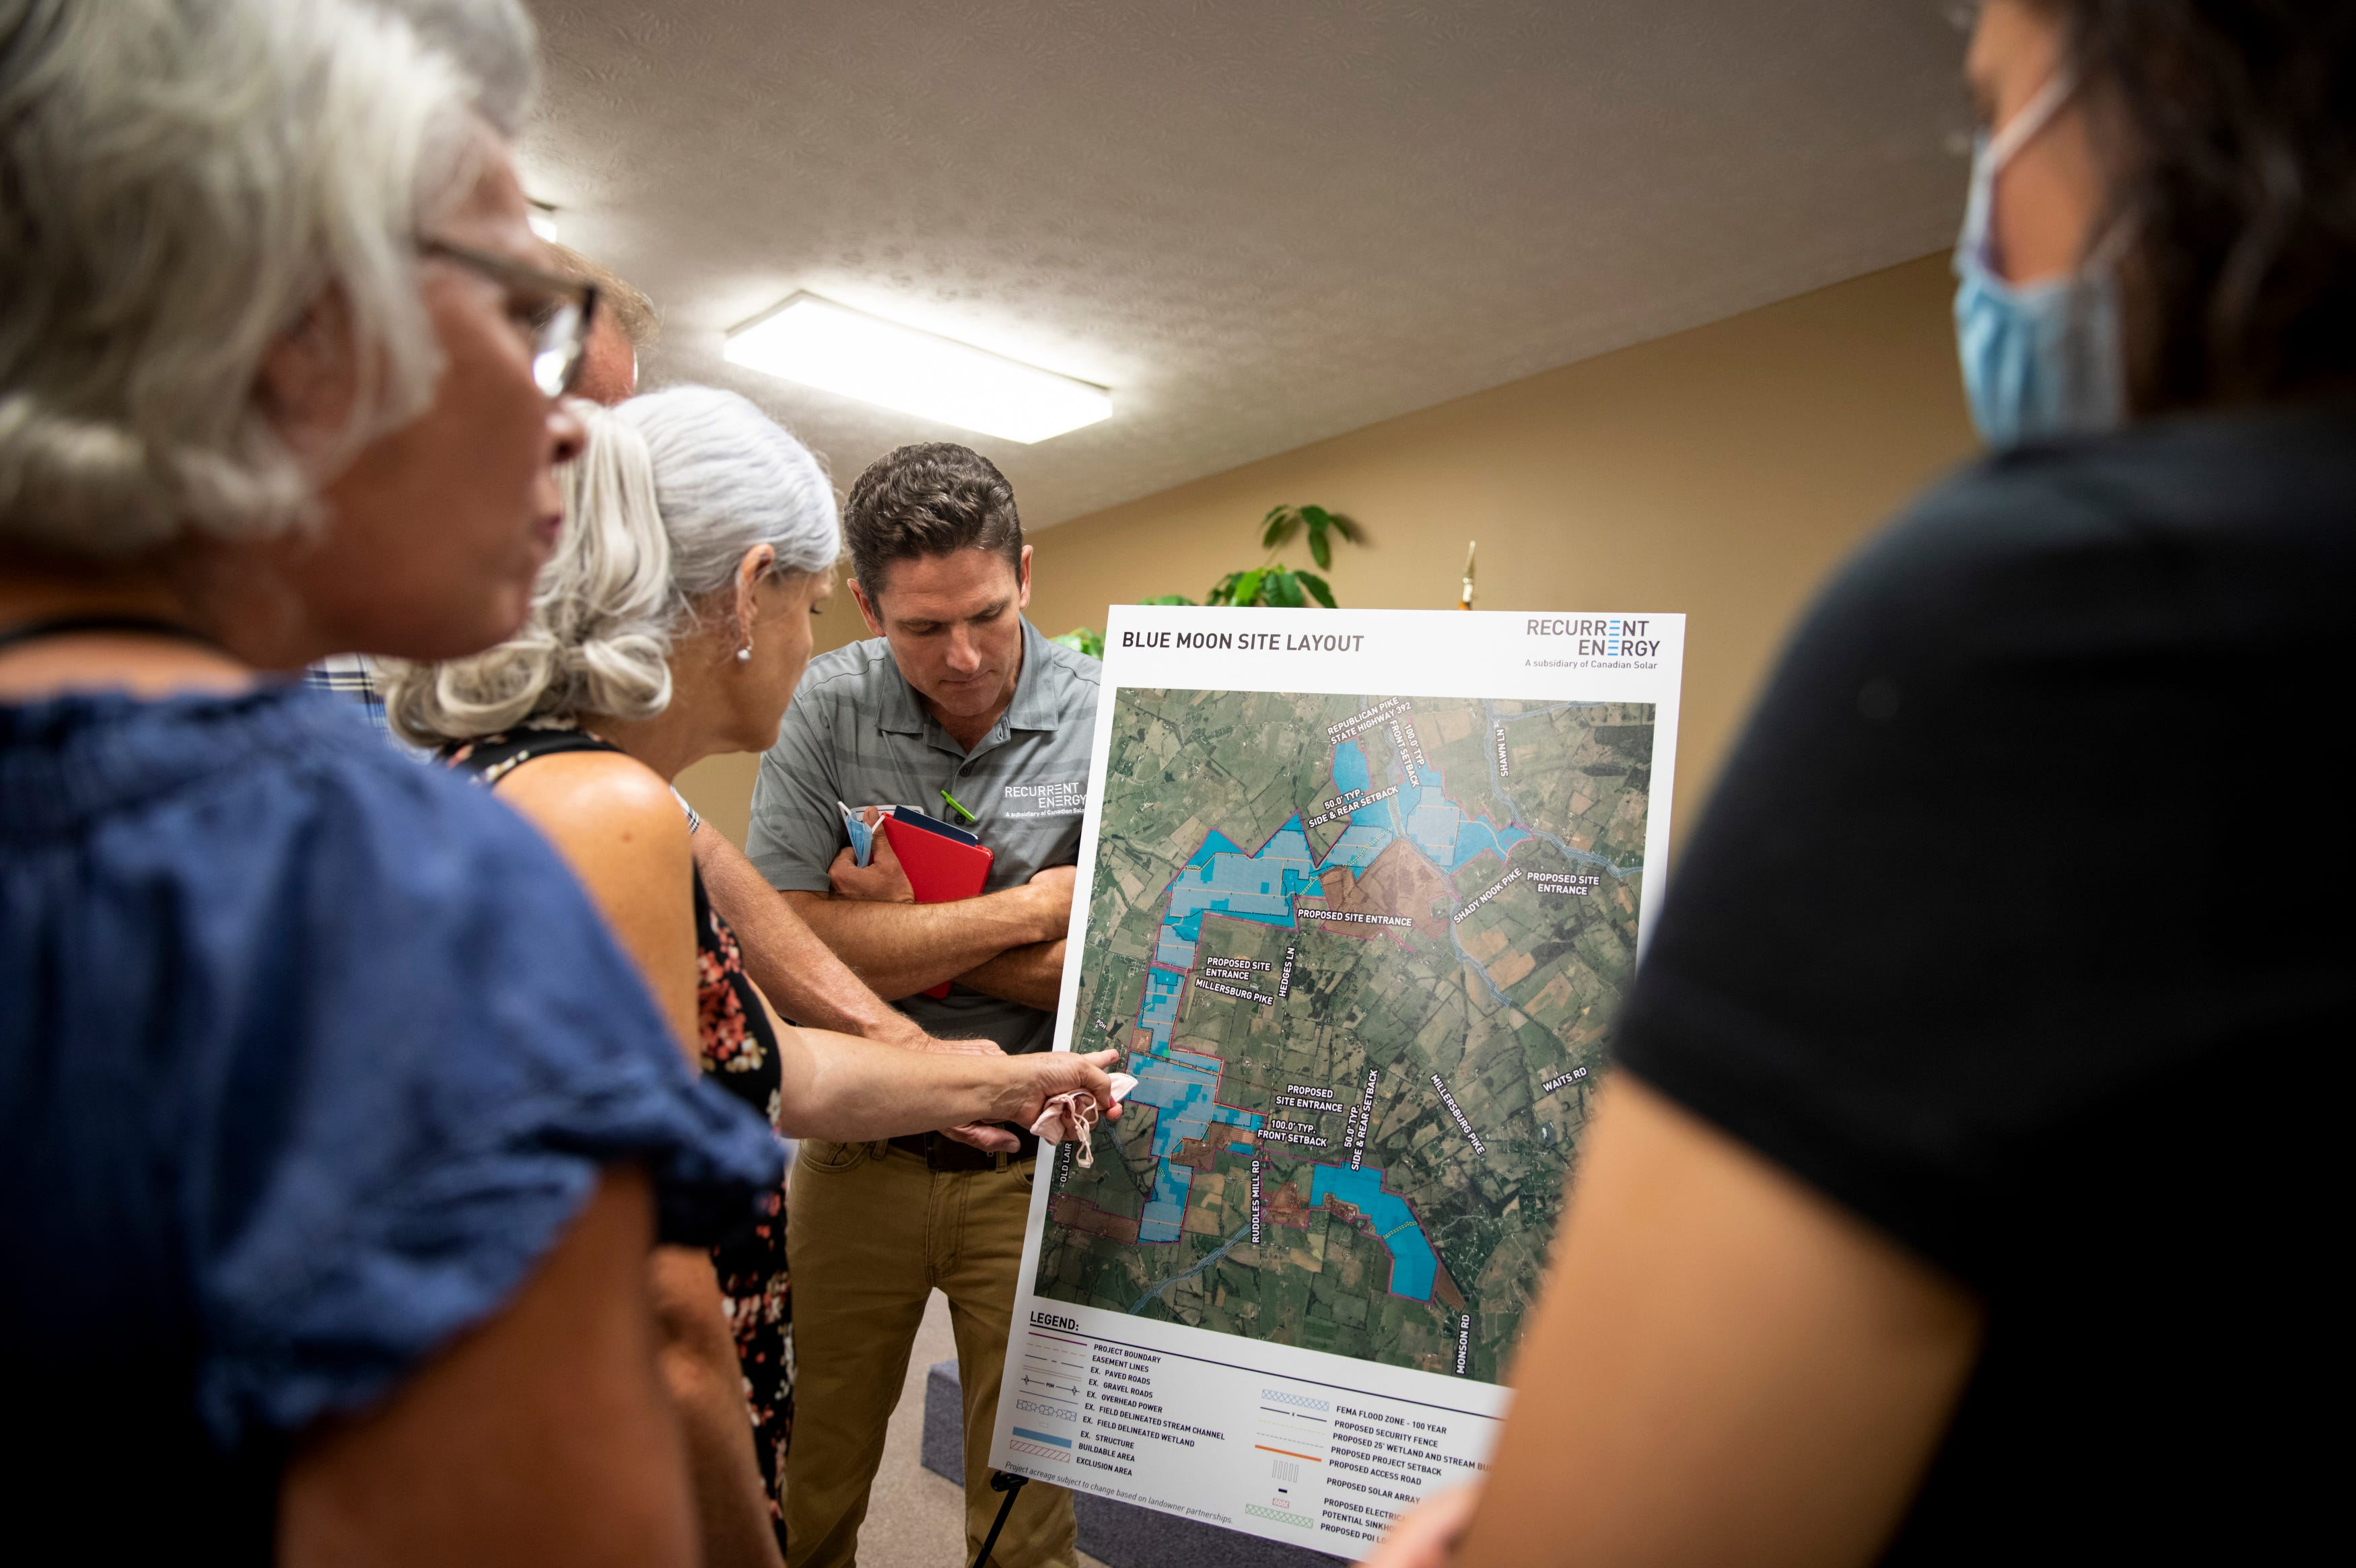 Community members ask questions about a proposed solar facility during a Recurrent Energy information session at the Harrison County Cooperative Extension Office in Cynthiana, Ky., on Wednesday, August 25, 2021.